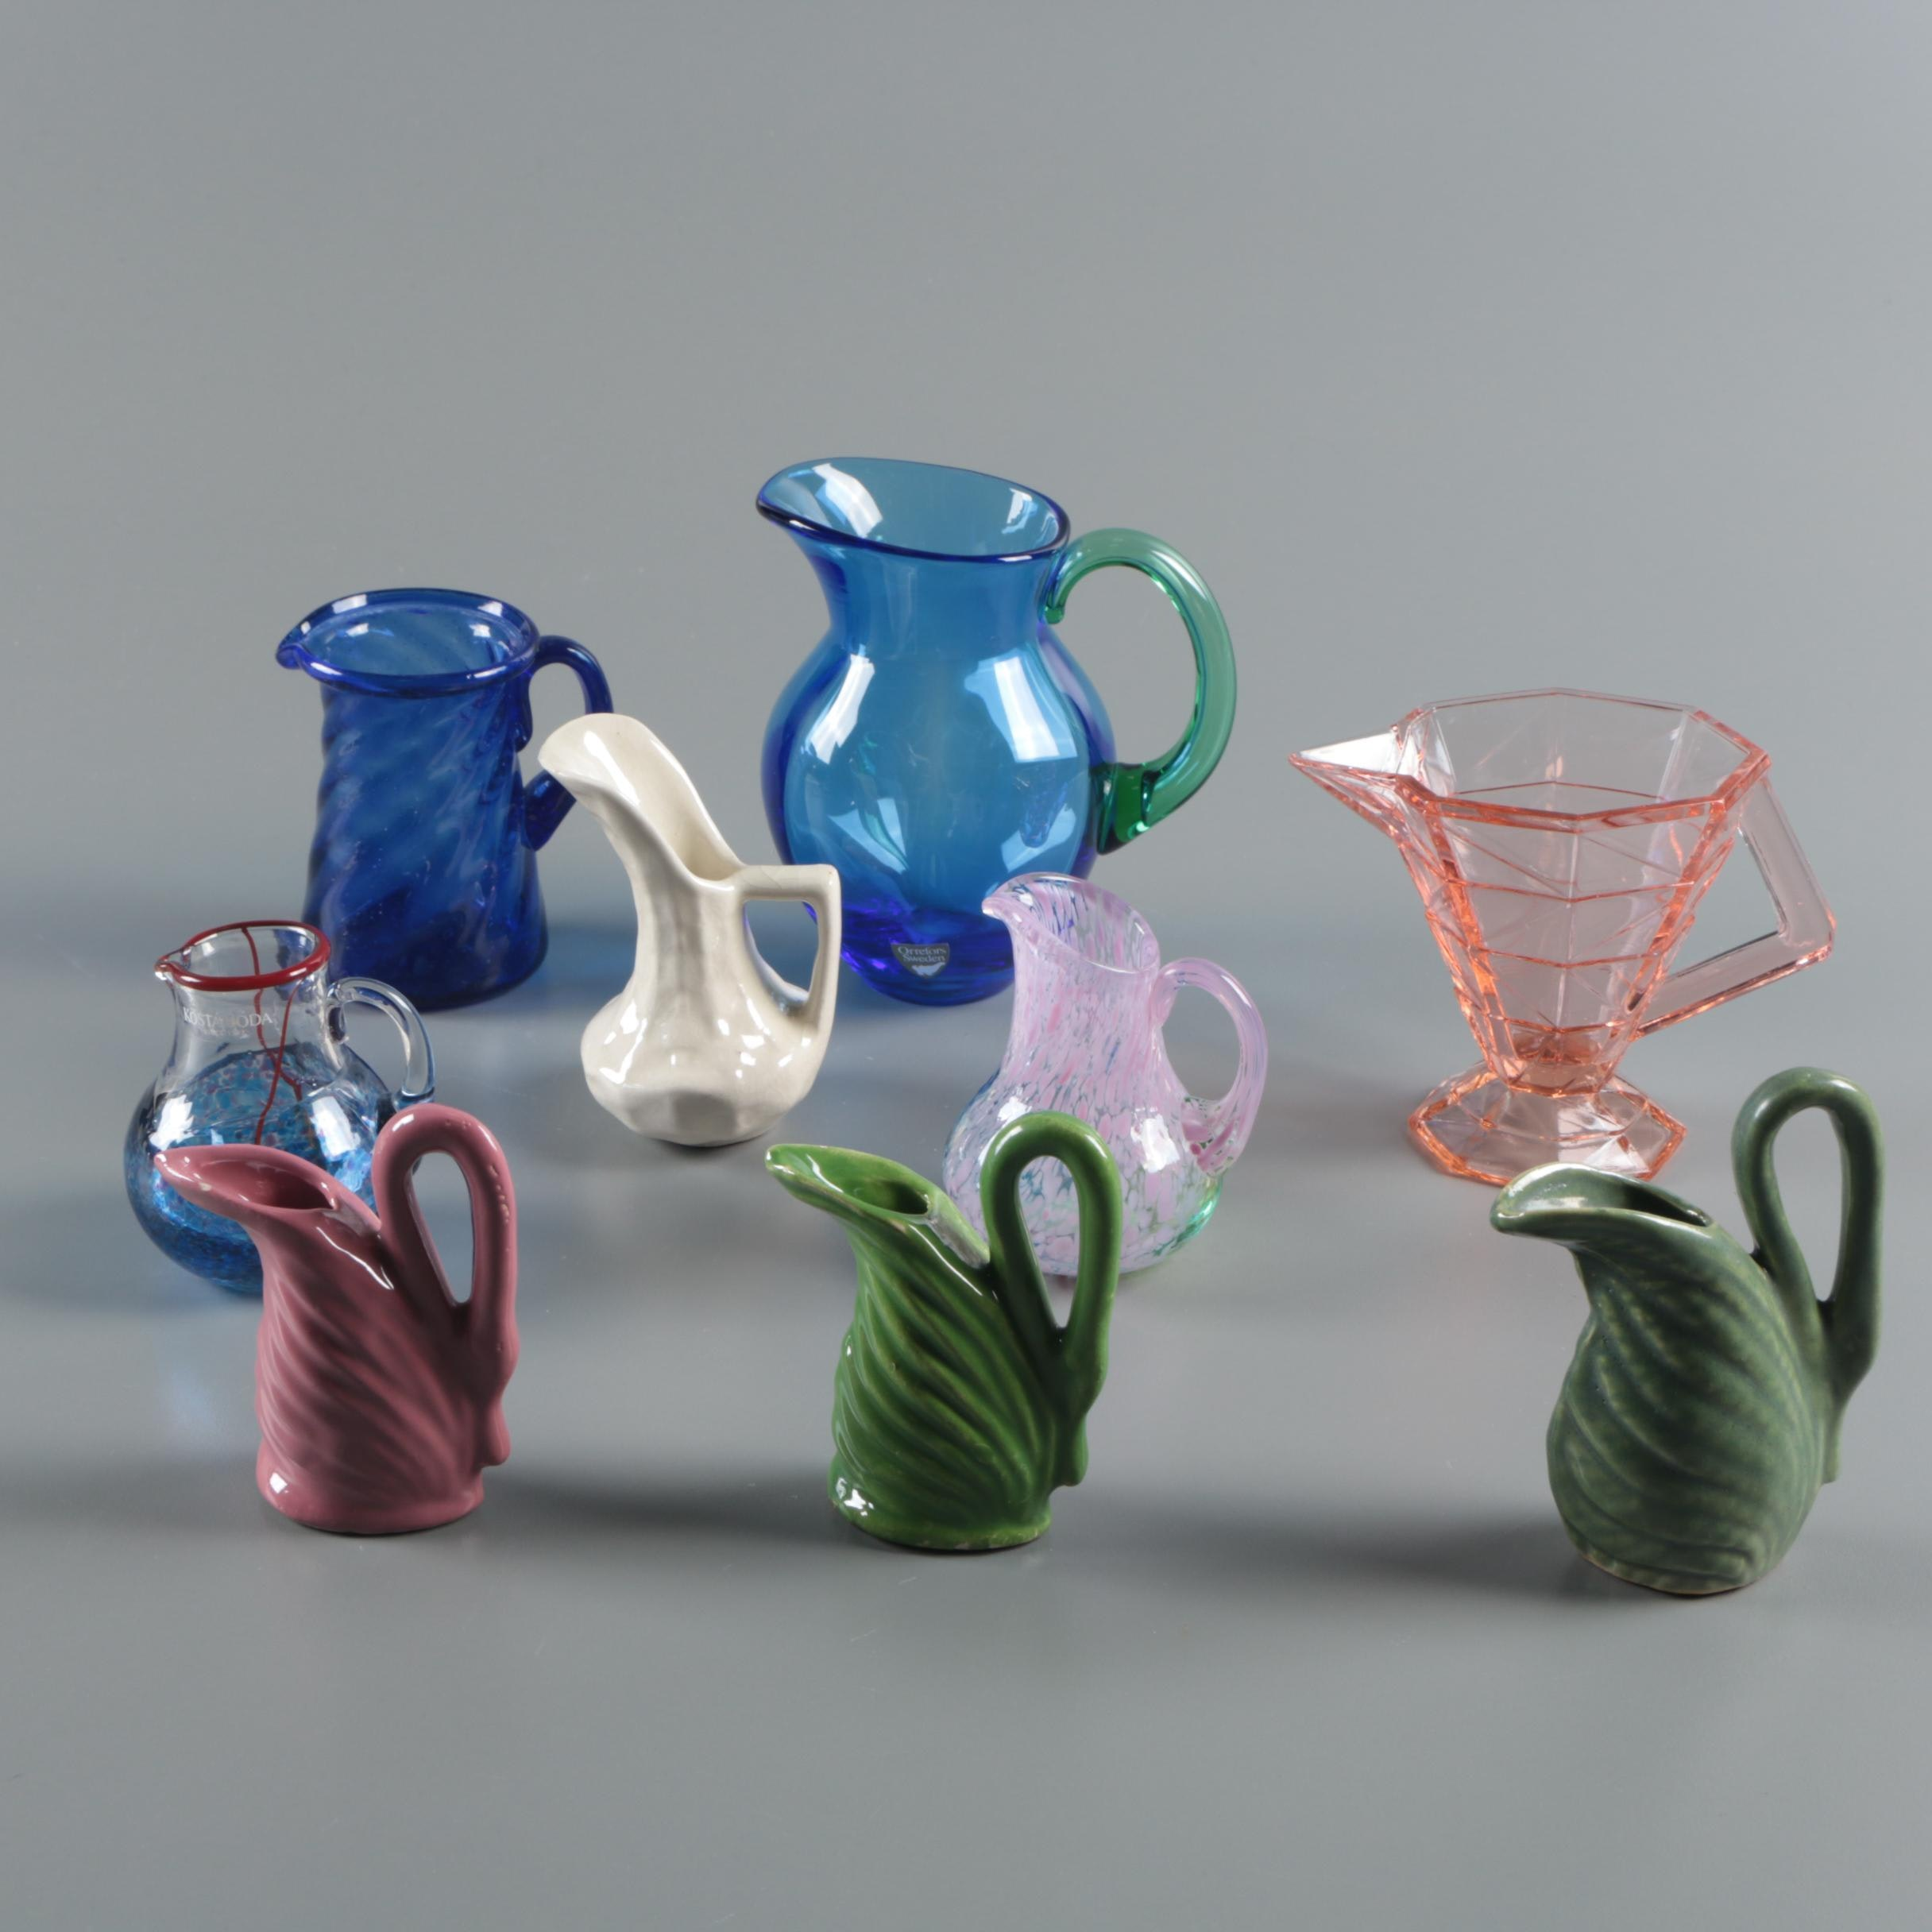 Pitchers Including Kosta Boda and Orrefors Art Glass